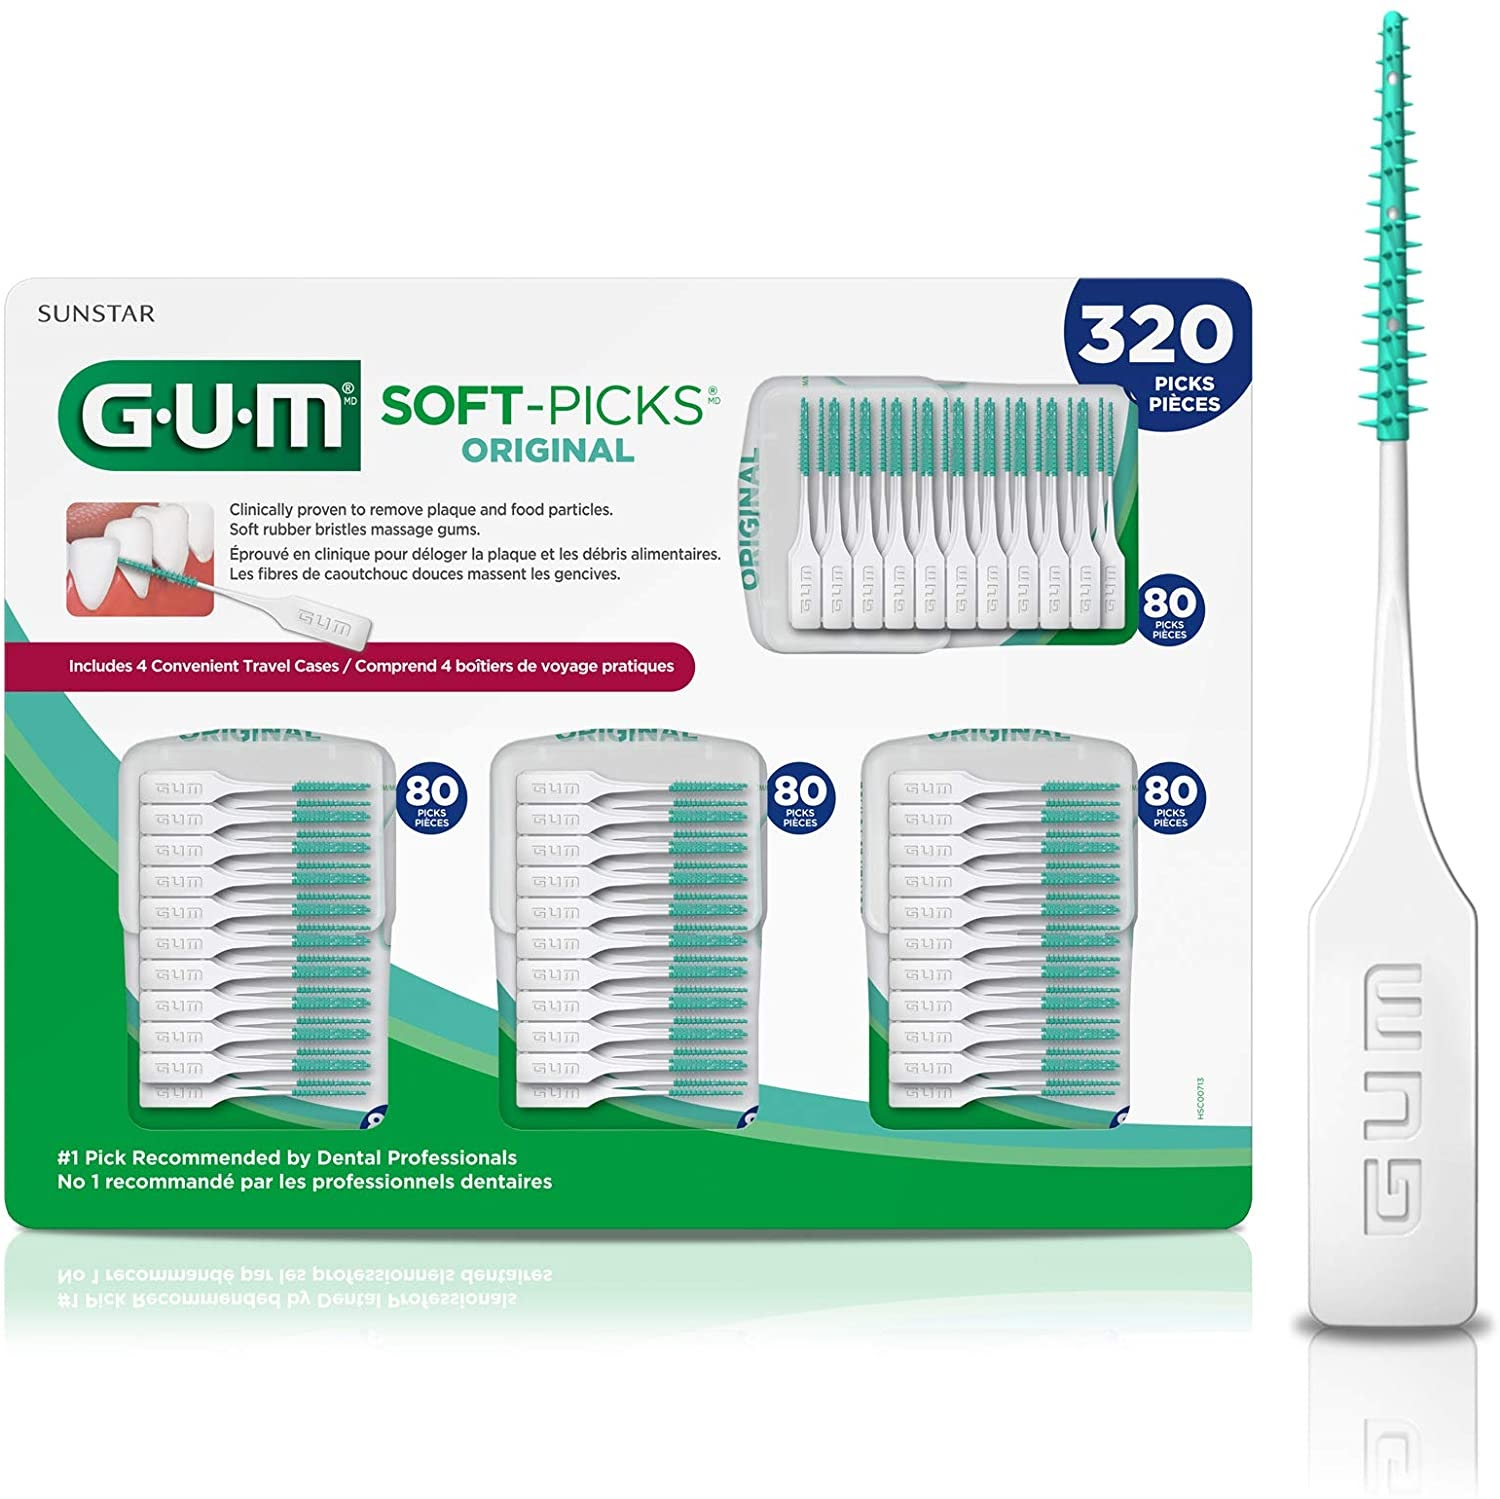 GUM brand dental picks recommended by family dentists for both children and adults